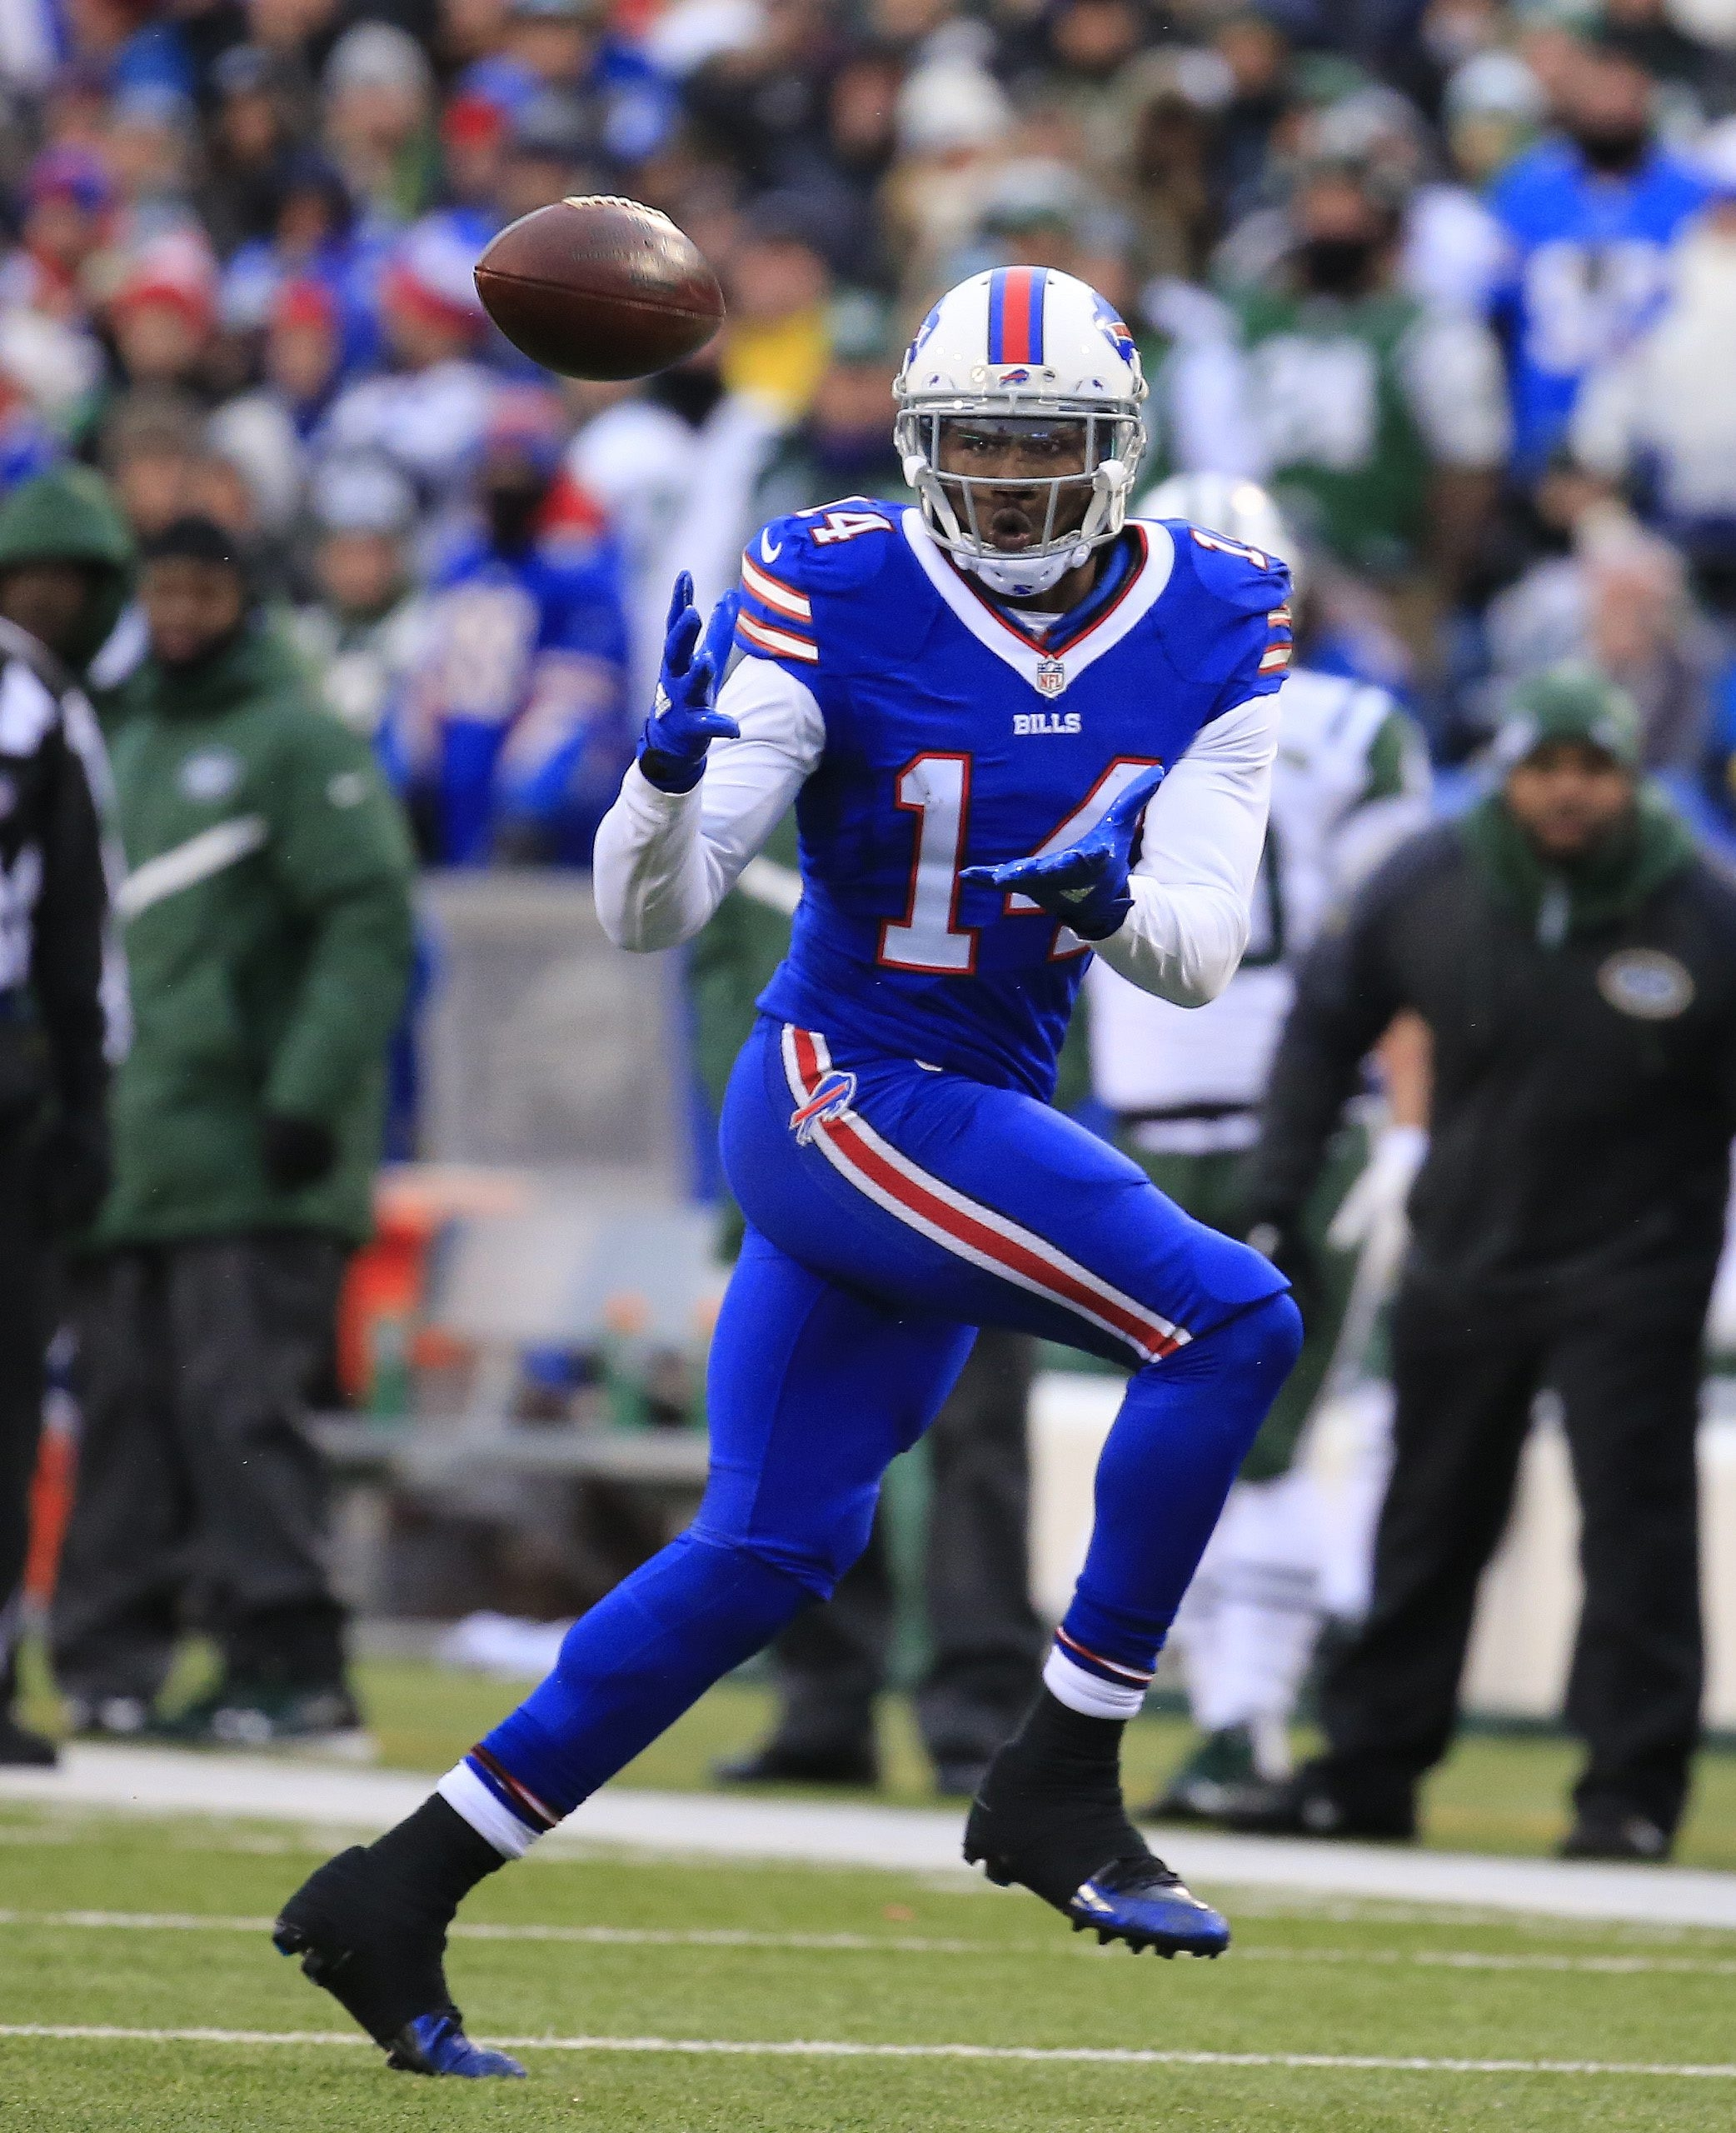 Sammy Watkins emerged in the second half of the season, leading the Bills with 60 receptions.